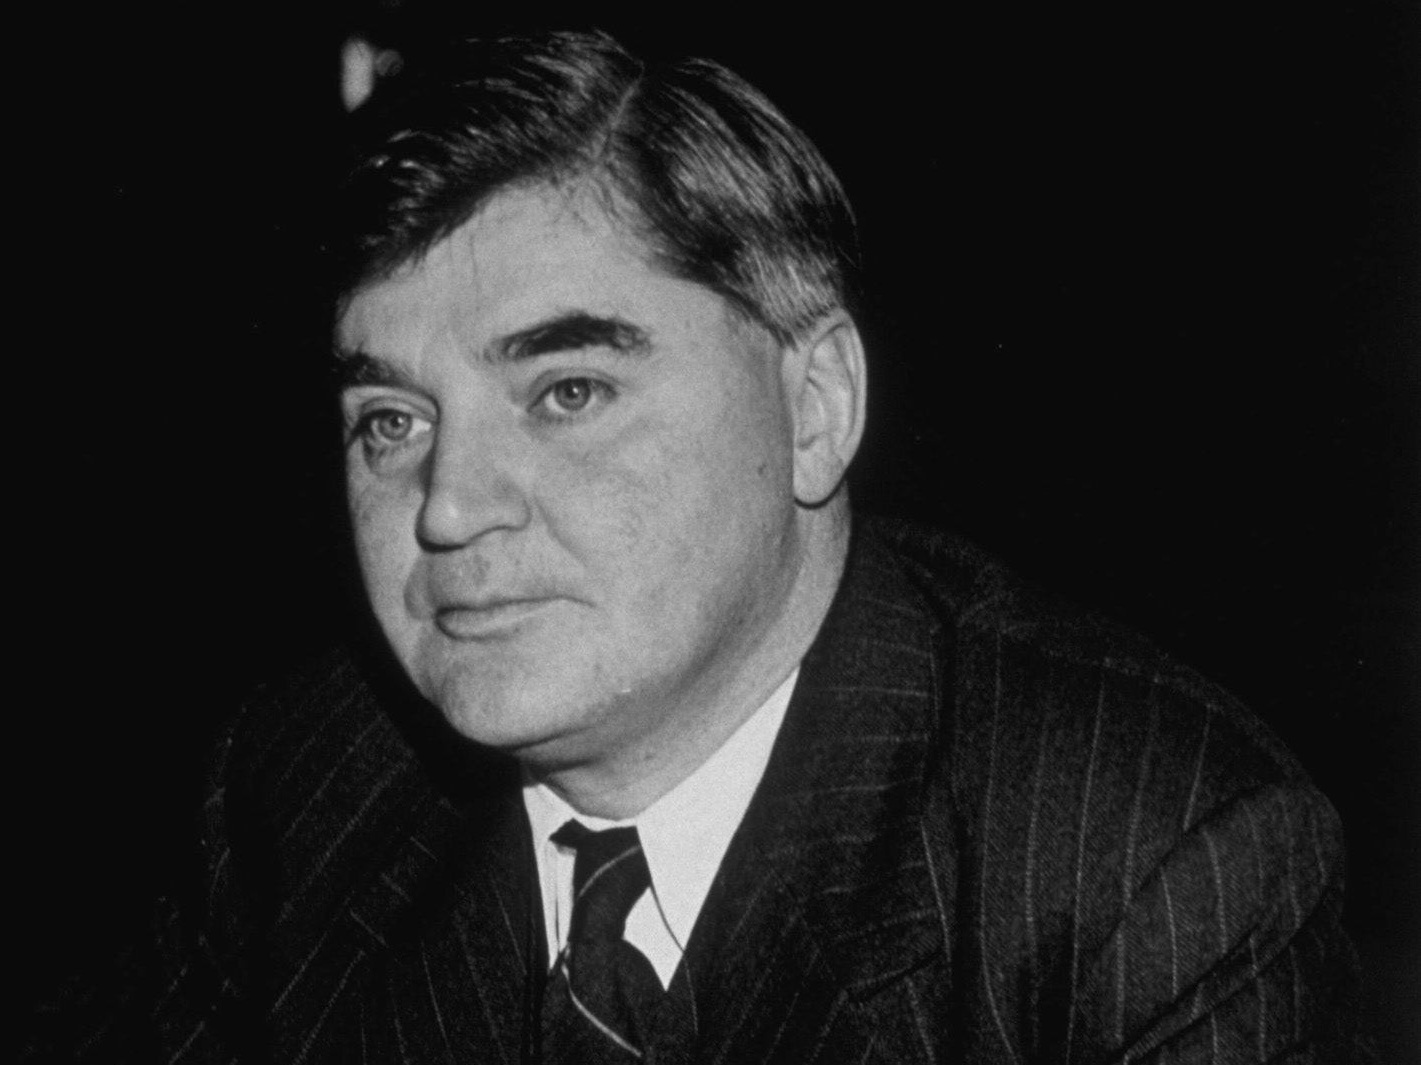 The NHS will last as long as there's folk left with faith to fight for it. - Aneurin Bevan,Founder of the NHS